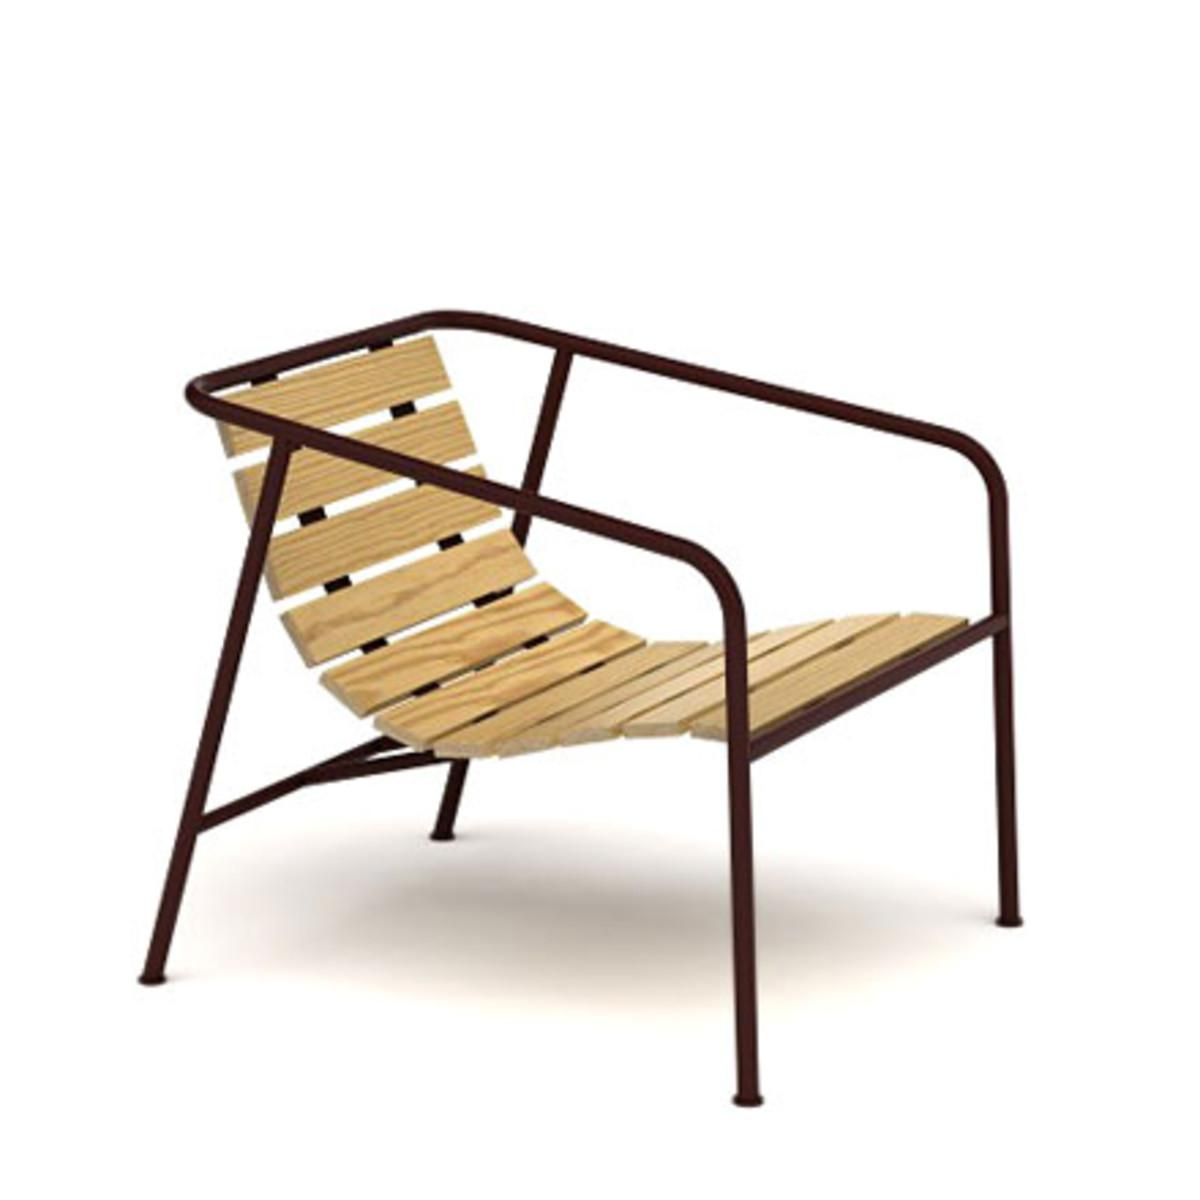 wooden slat chairs kohls anti gravity chair a made of slats oikos blog